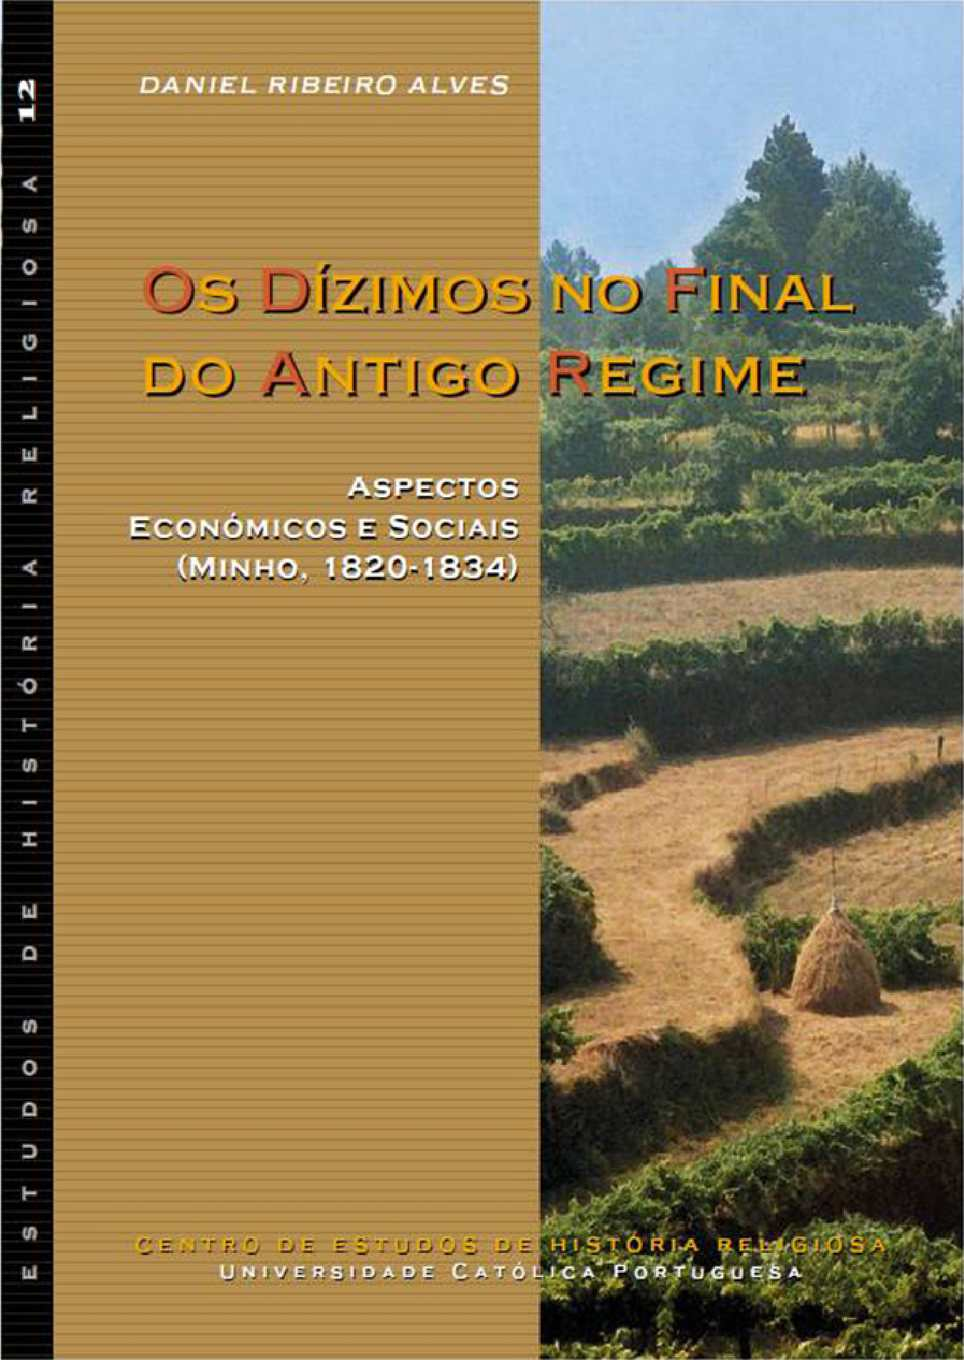 Os Dízimos no Final do Antigo Regime: Aspectos Económicos e Sociais (Minho, 1820-1834)